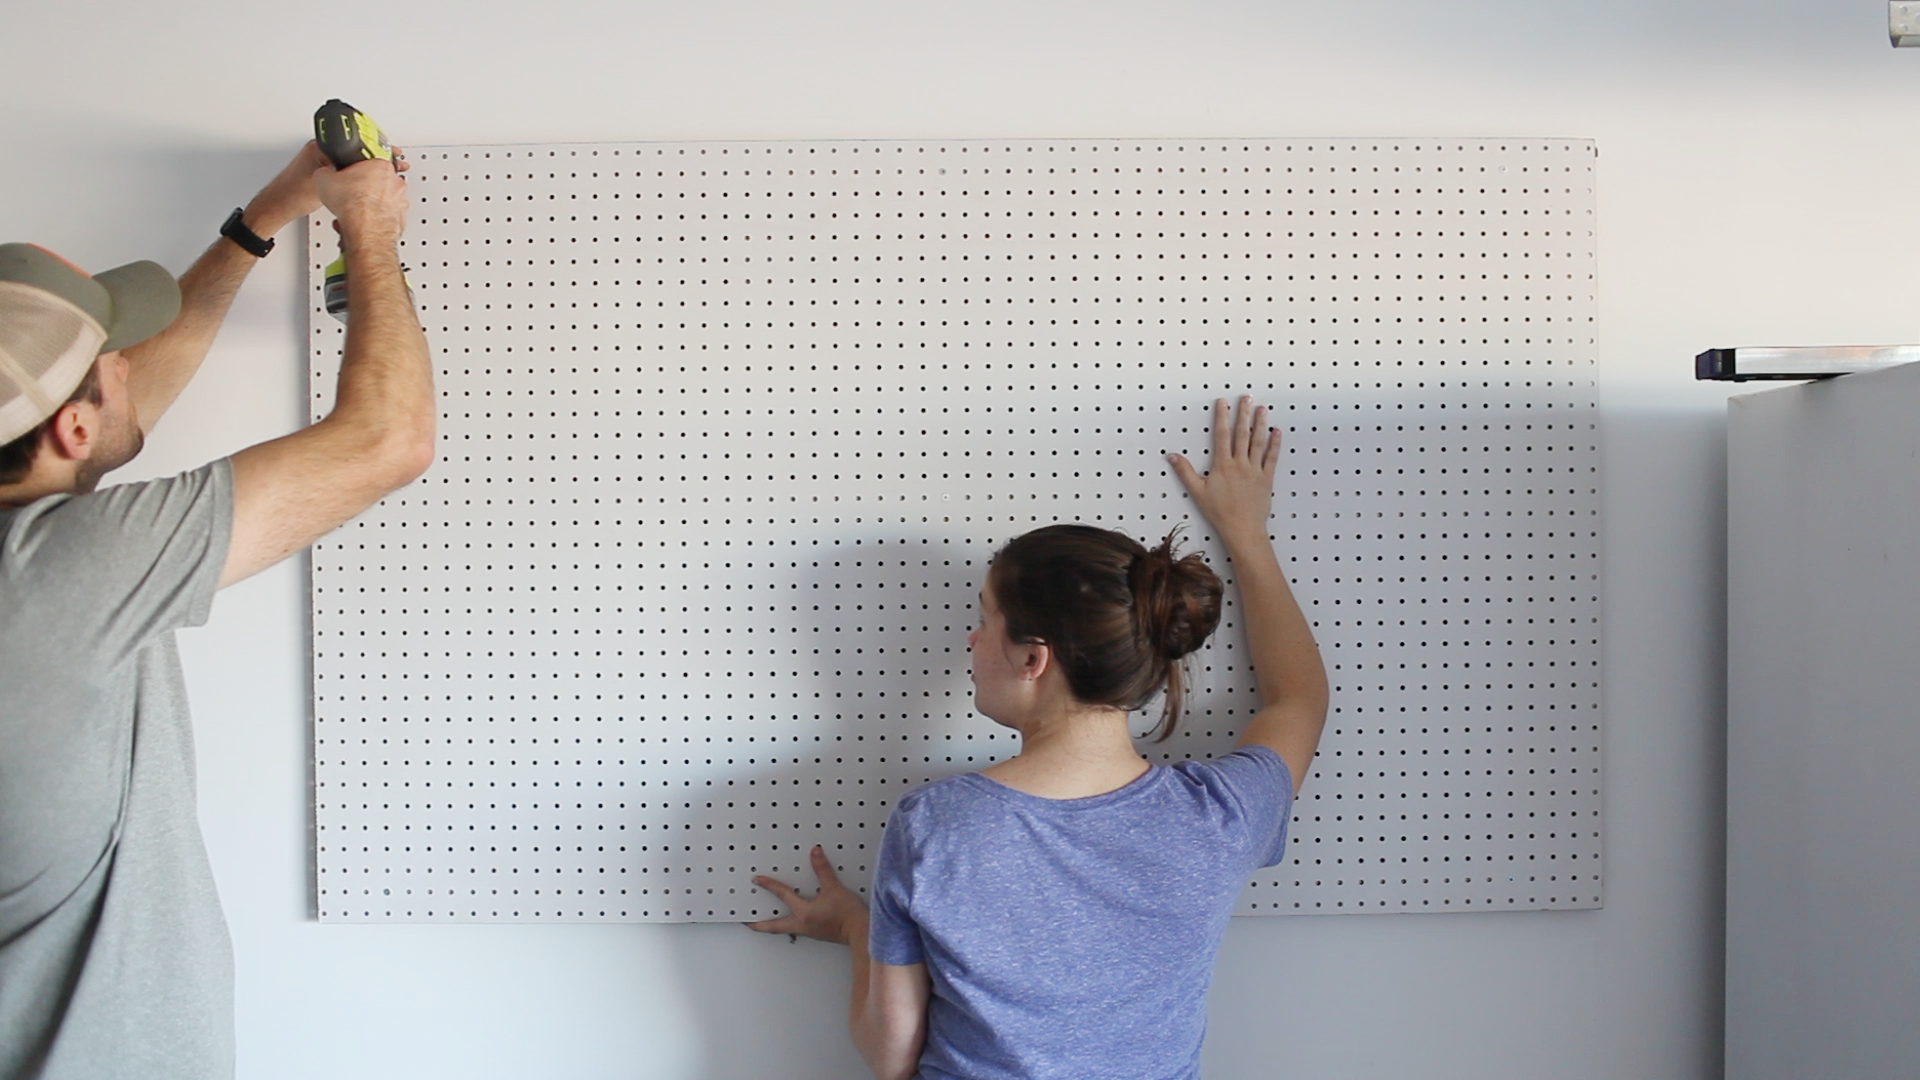 mount pegboard to garage wall and secure